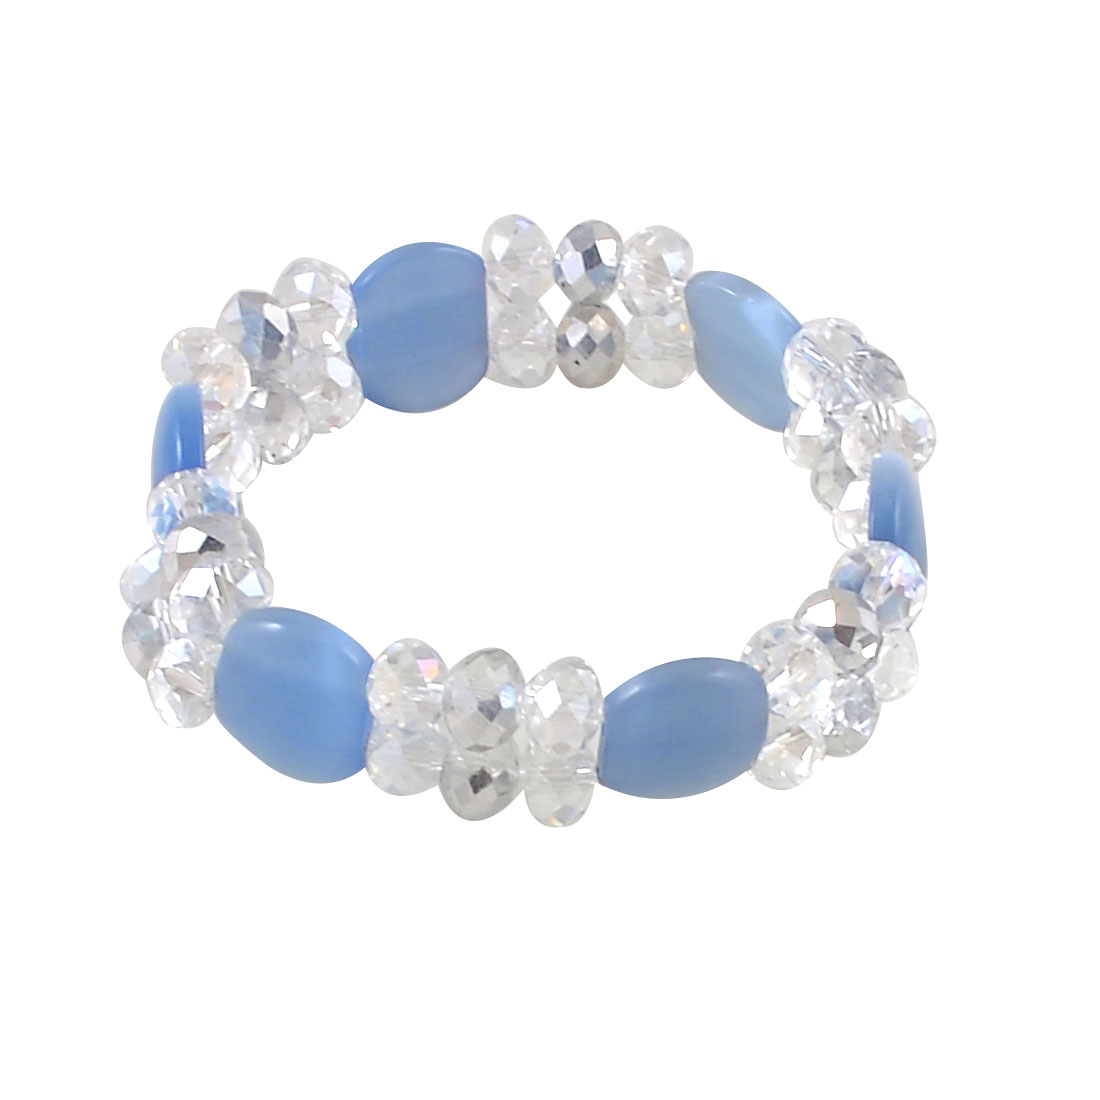 Elastic Light Blue Clear Beaded 2 Layers Crystal Beads Wrist Bracelet for Girl